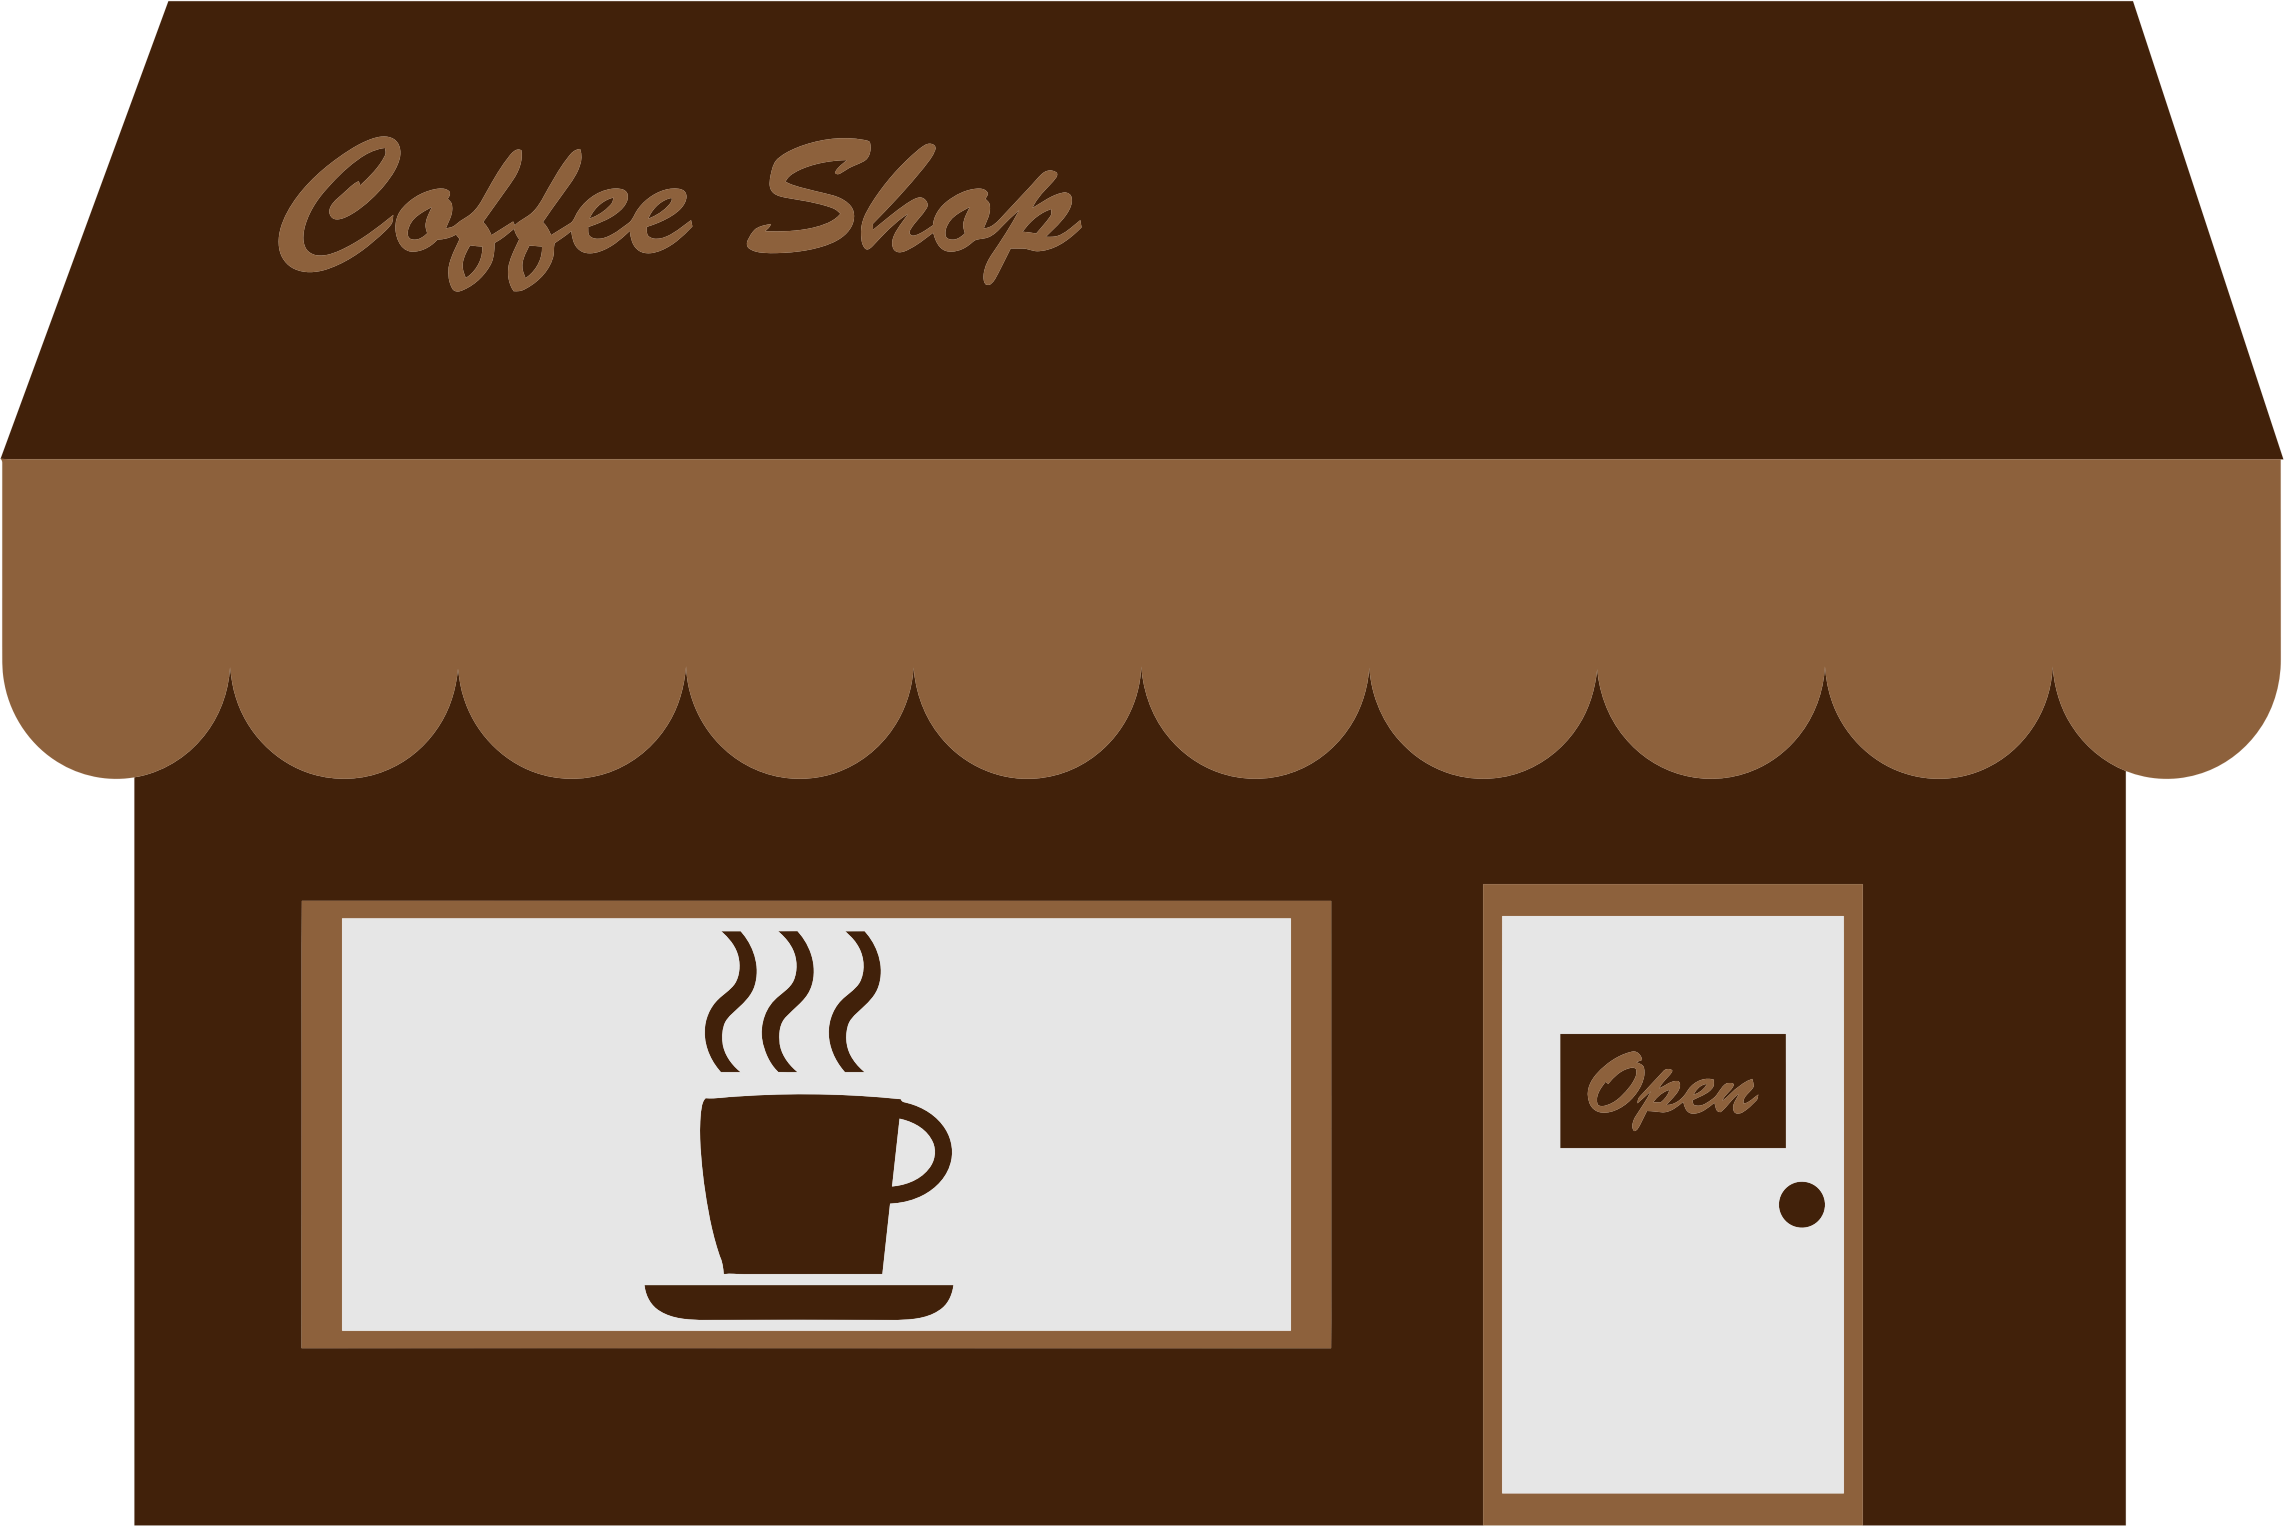 Coffee Shop Storefront by GDJ